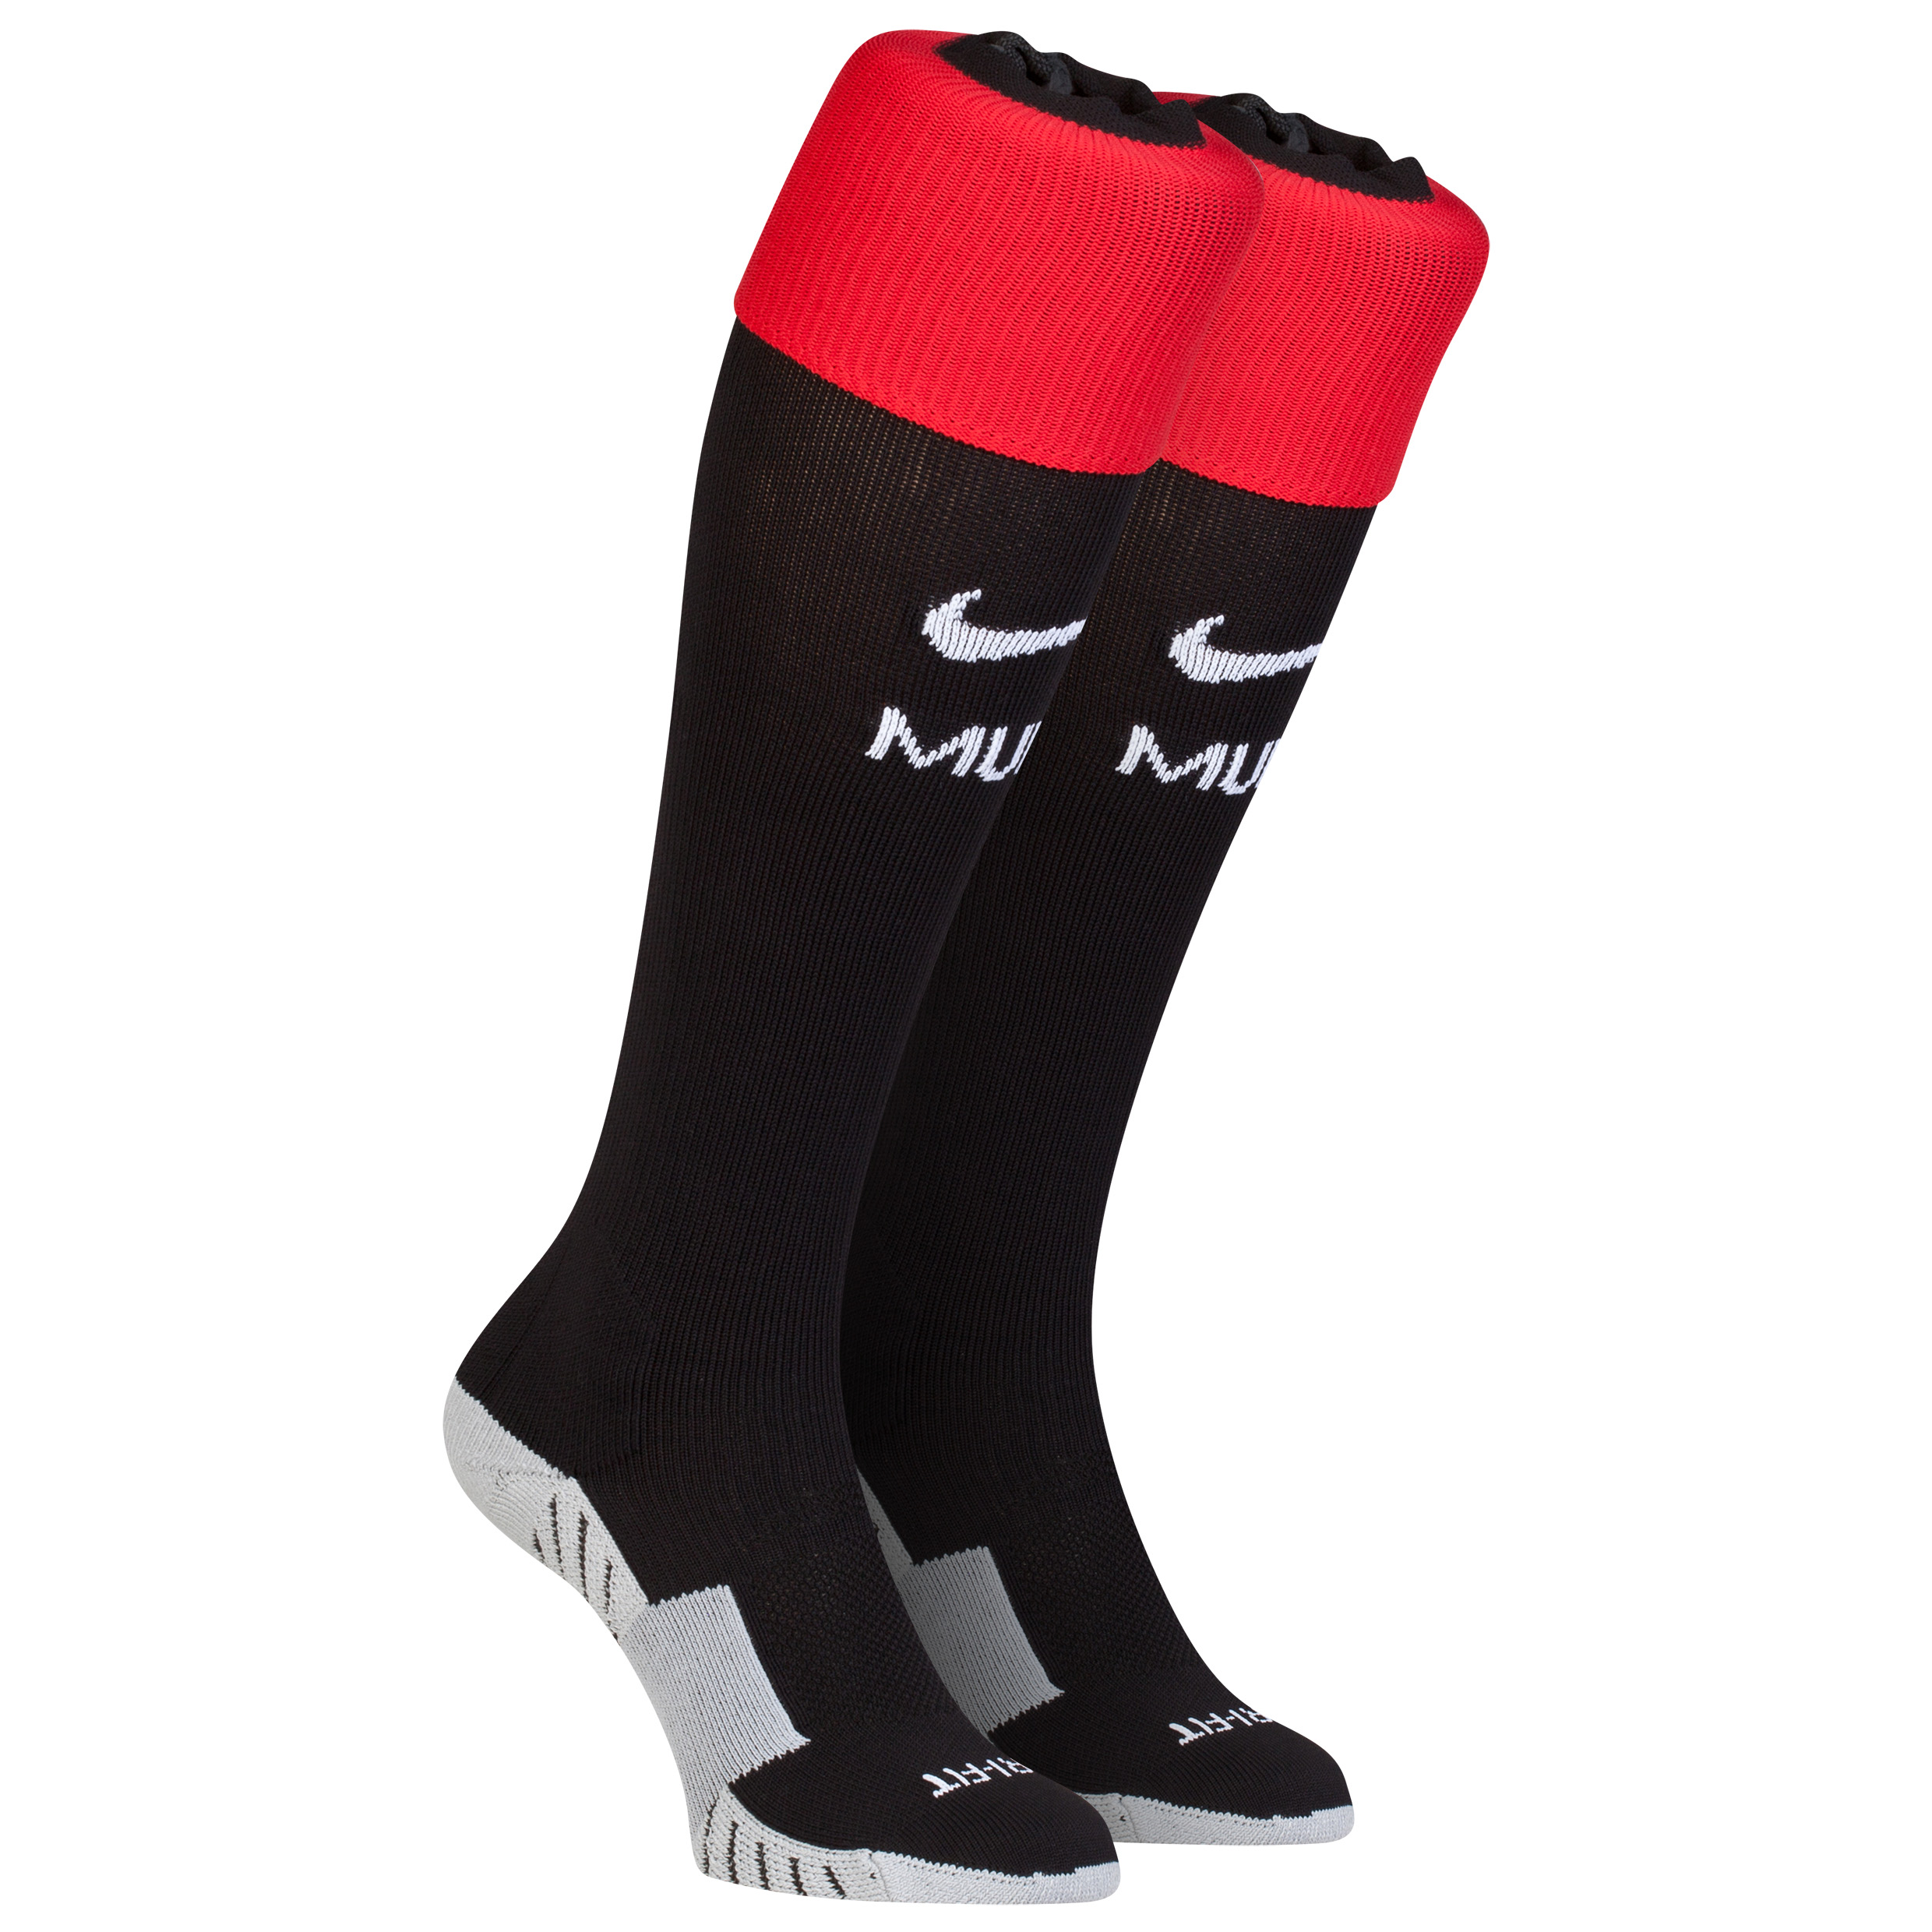 Manchester United Home Socks 2014/15